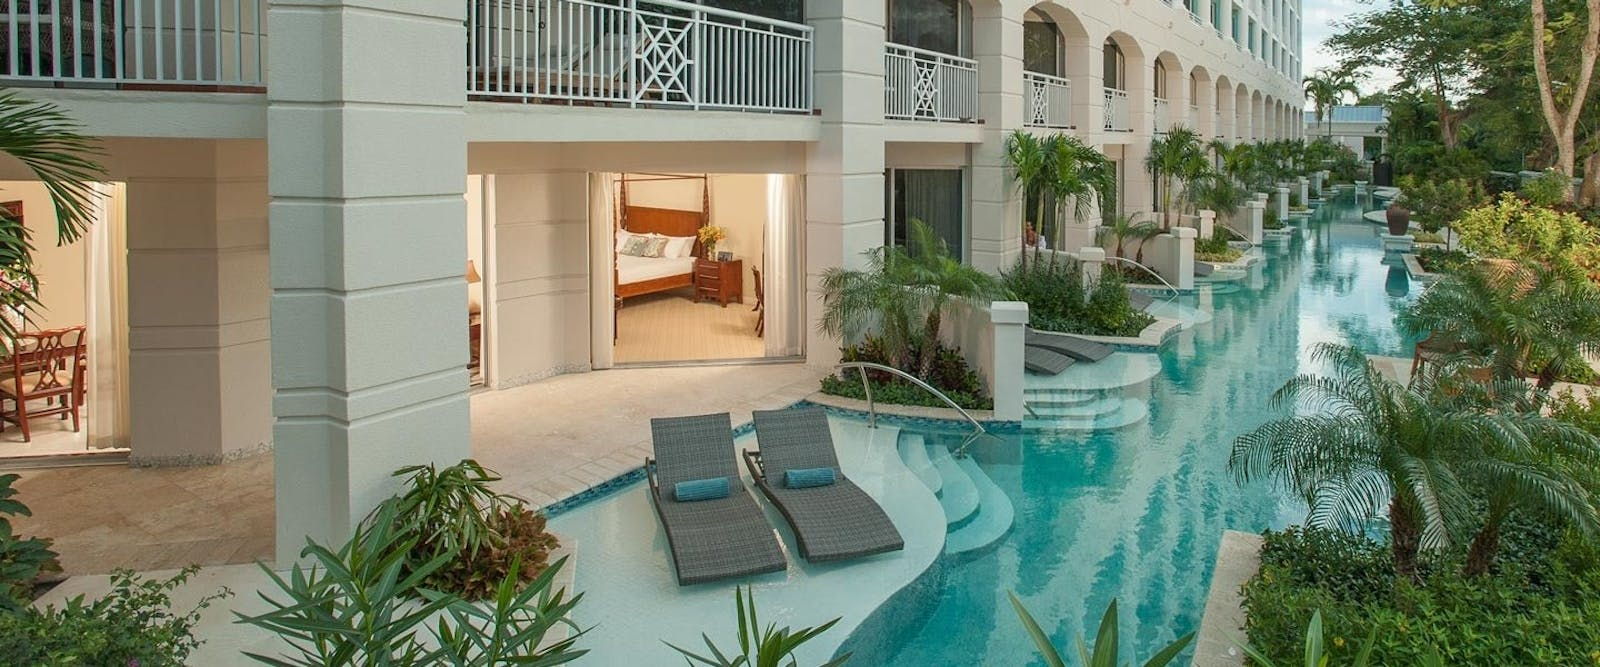 Swim Up Crystal lagoon Suite at Sandals Royal Bahamian, Bahamas, Caribbean